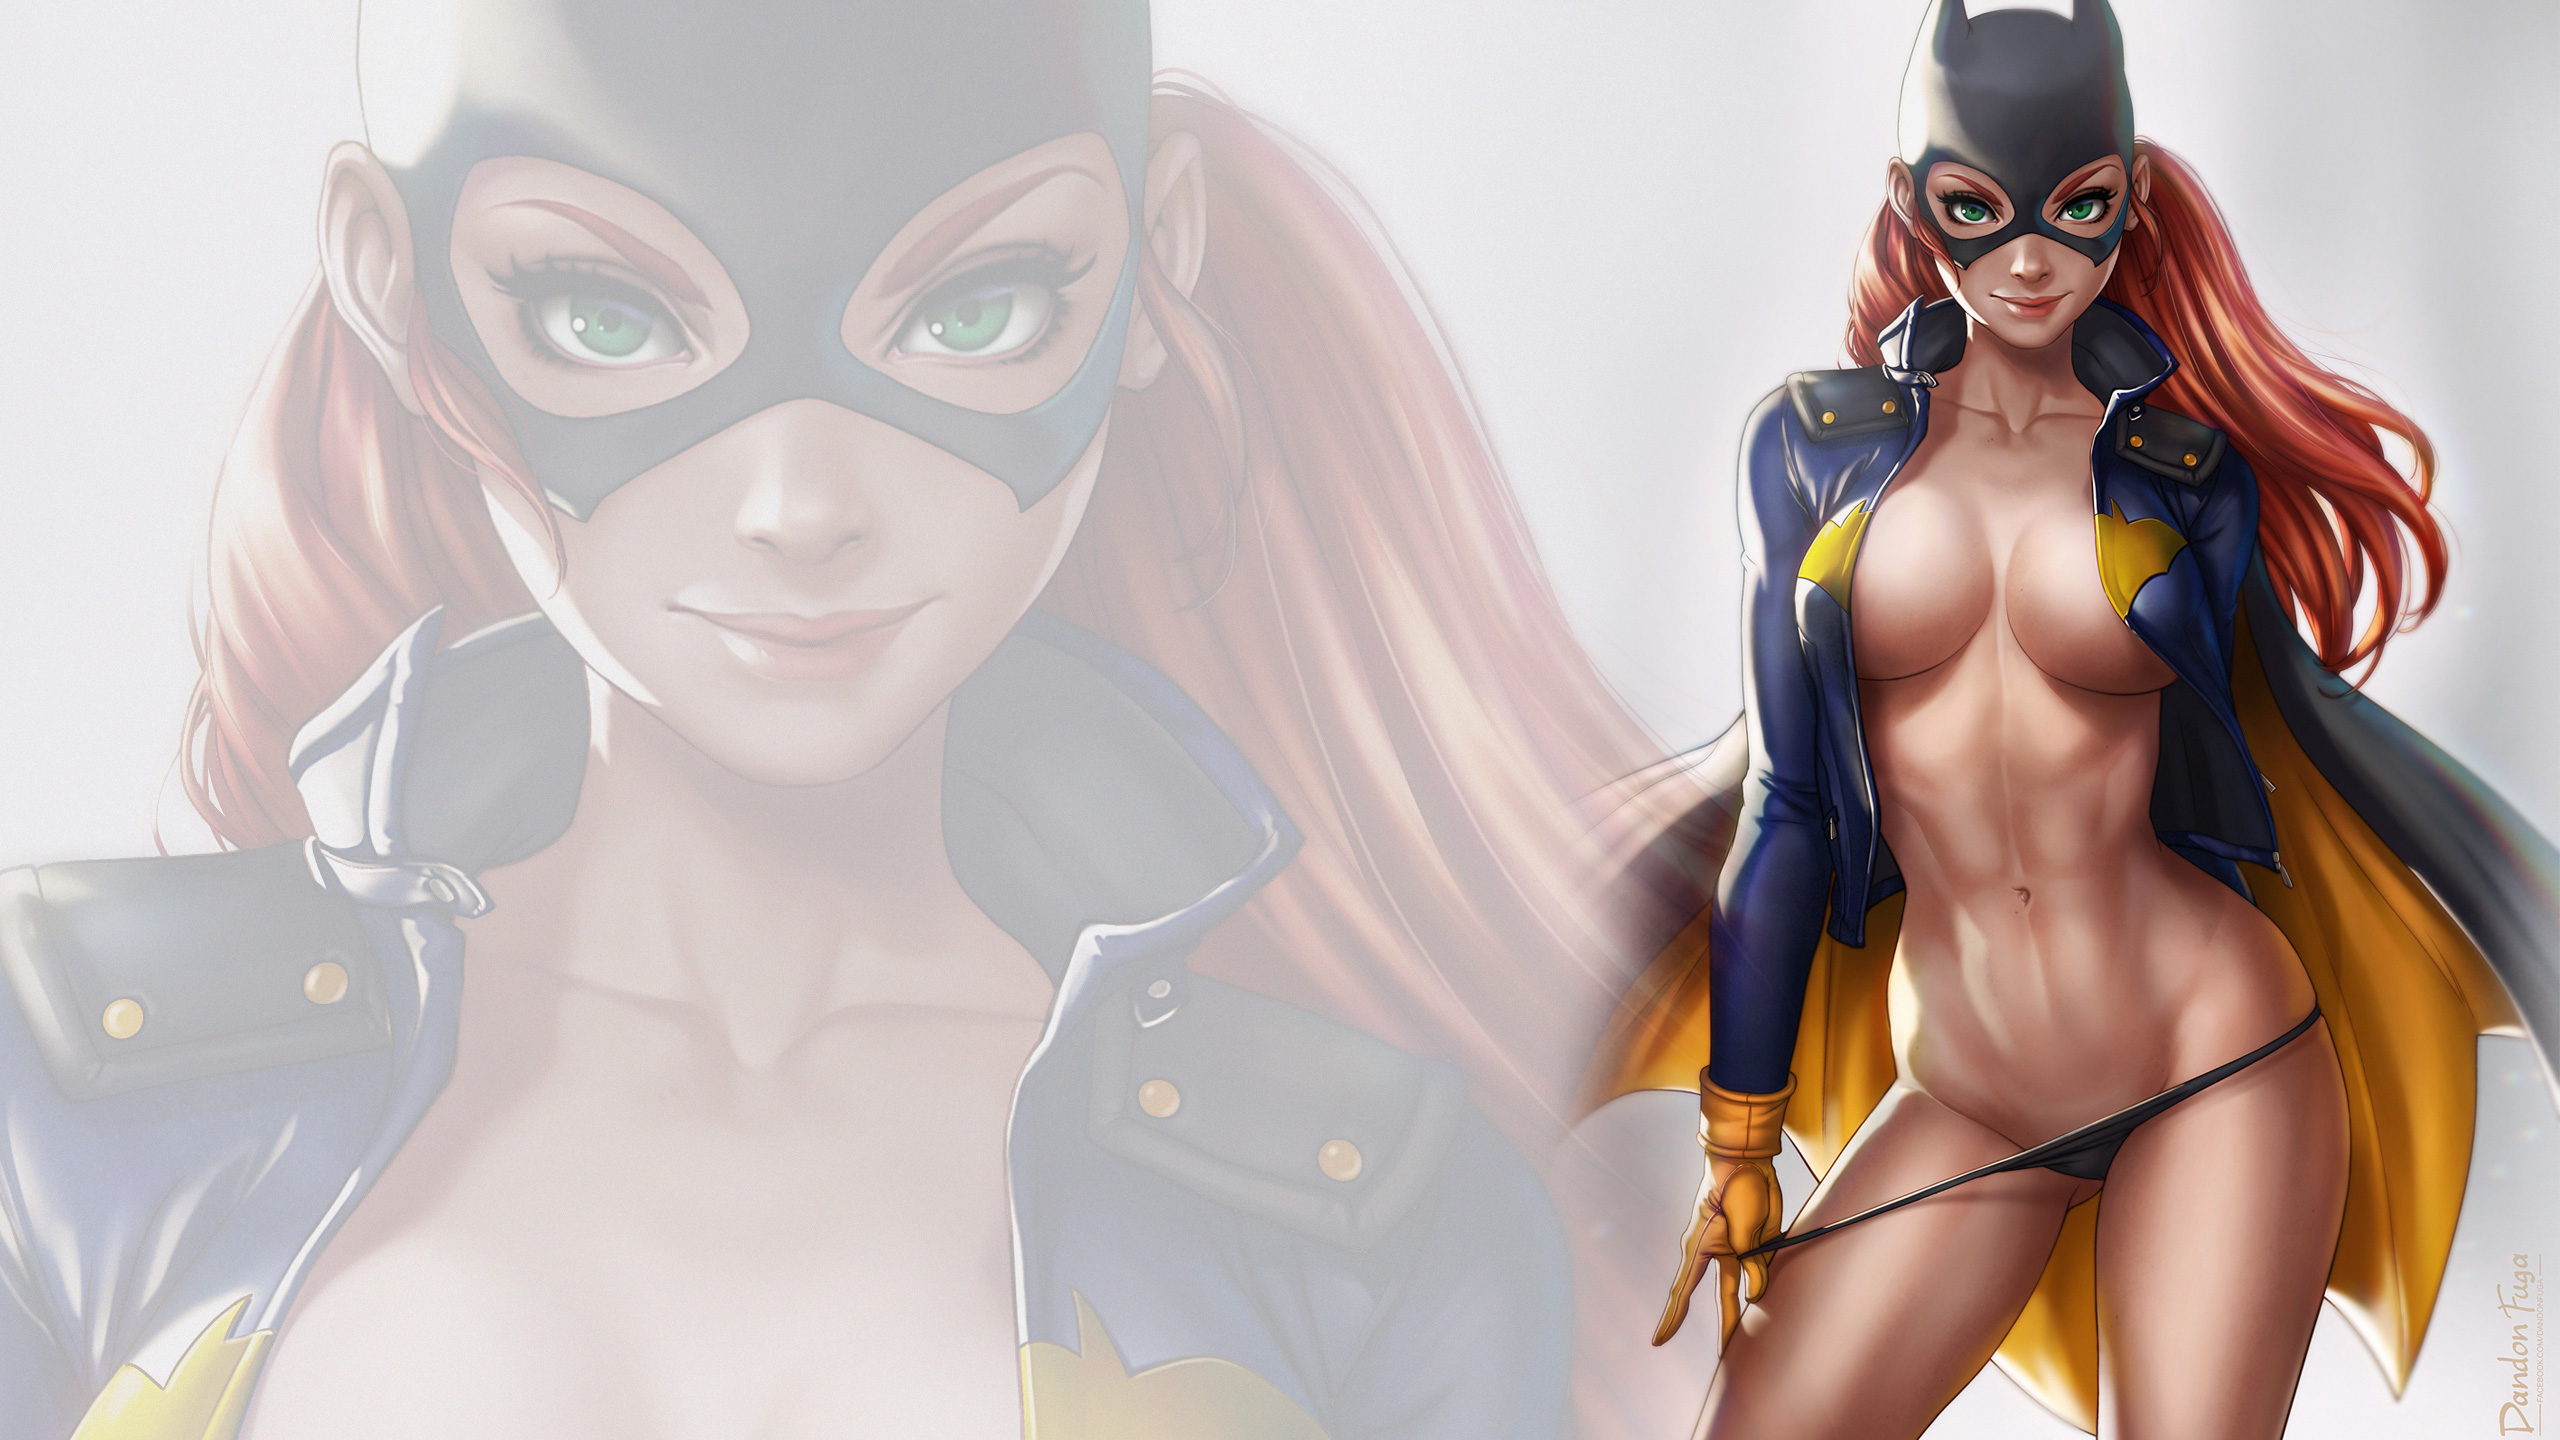 General 2560x1440 dandon fuga Batgirl mask green eyes